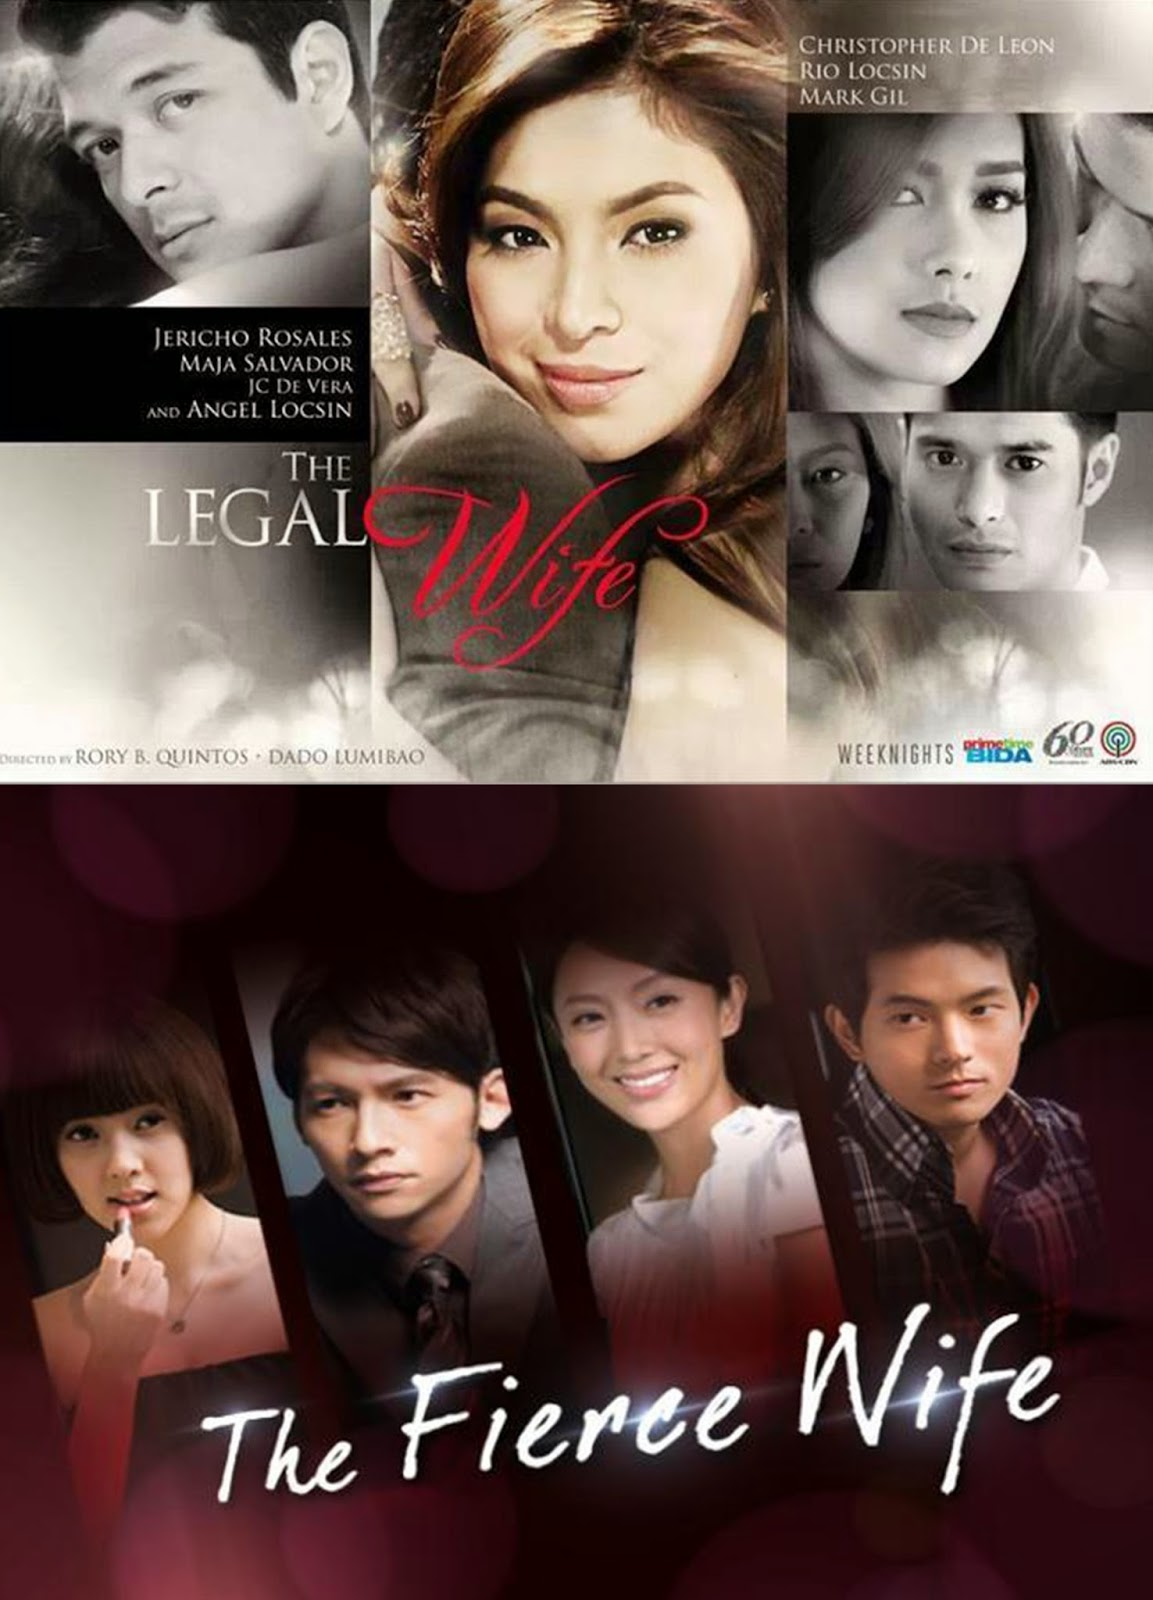 Flashback Friday: The Fierce Wife (2011) vs. The Legal Wife (2014)